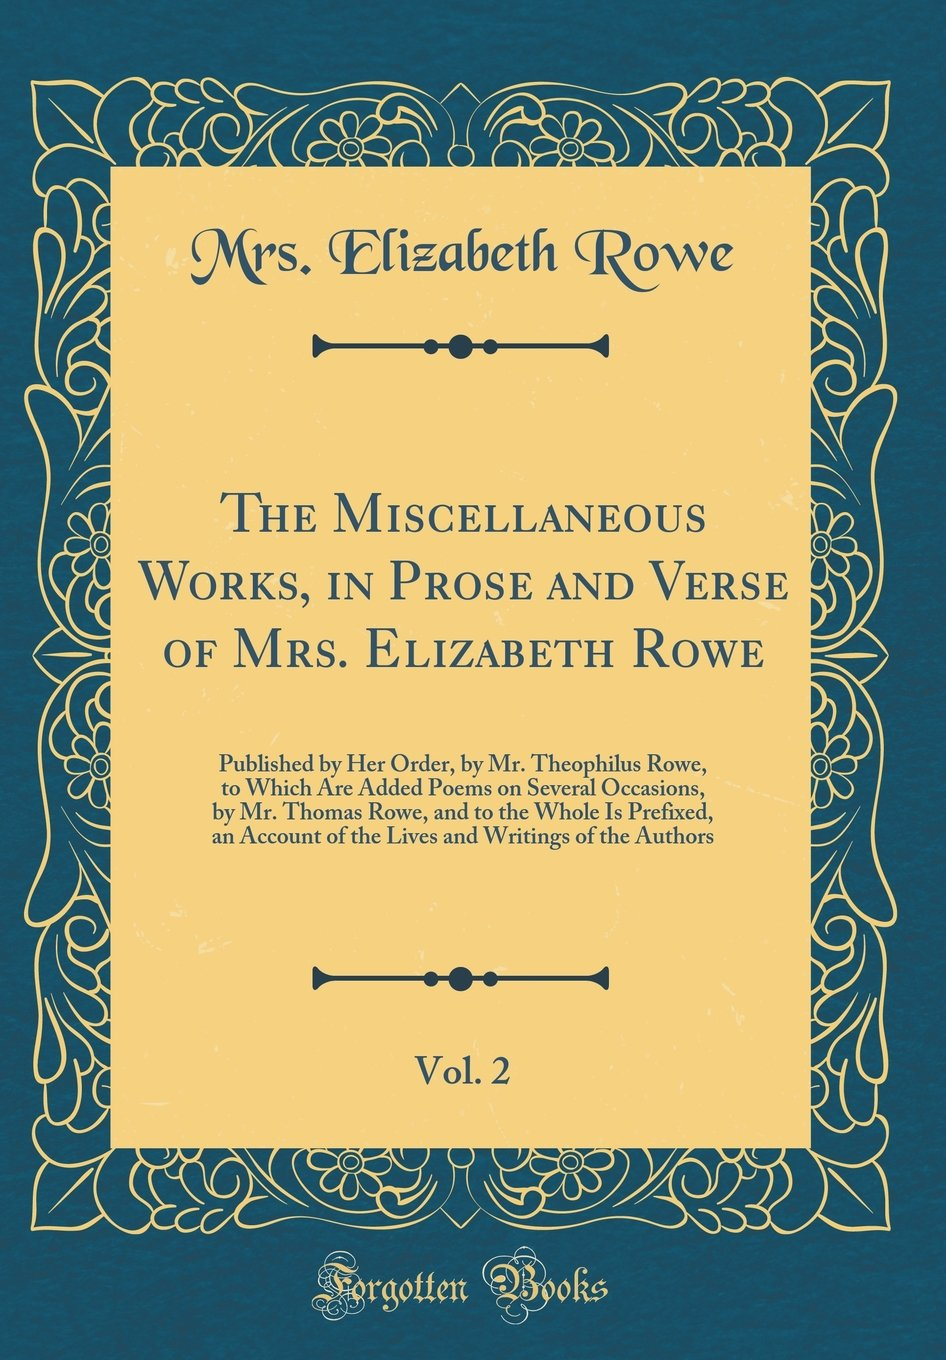 Download The Miscellaneous Works, in Prose and Verse of Mrs. Elizabeth Rowe, Vol. 2: Published by Her Order, by Mr. Theophilus Rowe, to Which Are Added Poems ... Prefixed, an Account of the Lives and Writin pdf epub